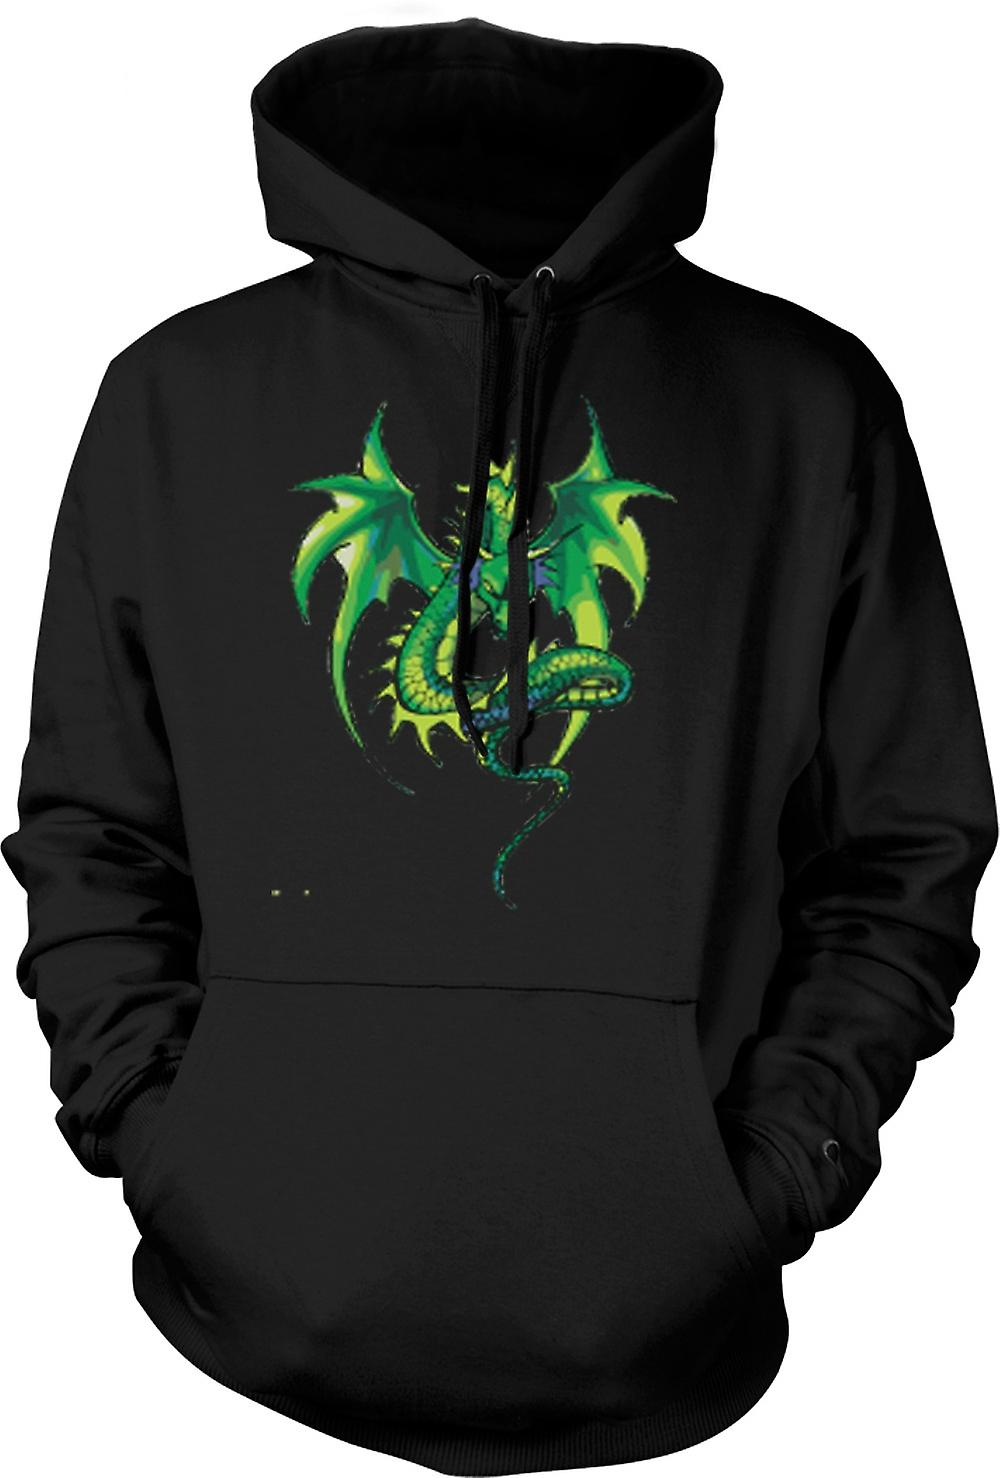 Kinder-Hoodie - Green Dragon Comic-Design